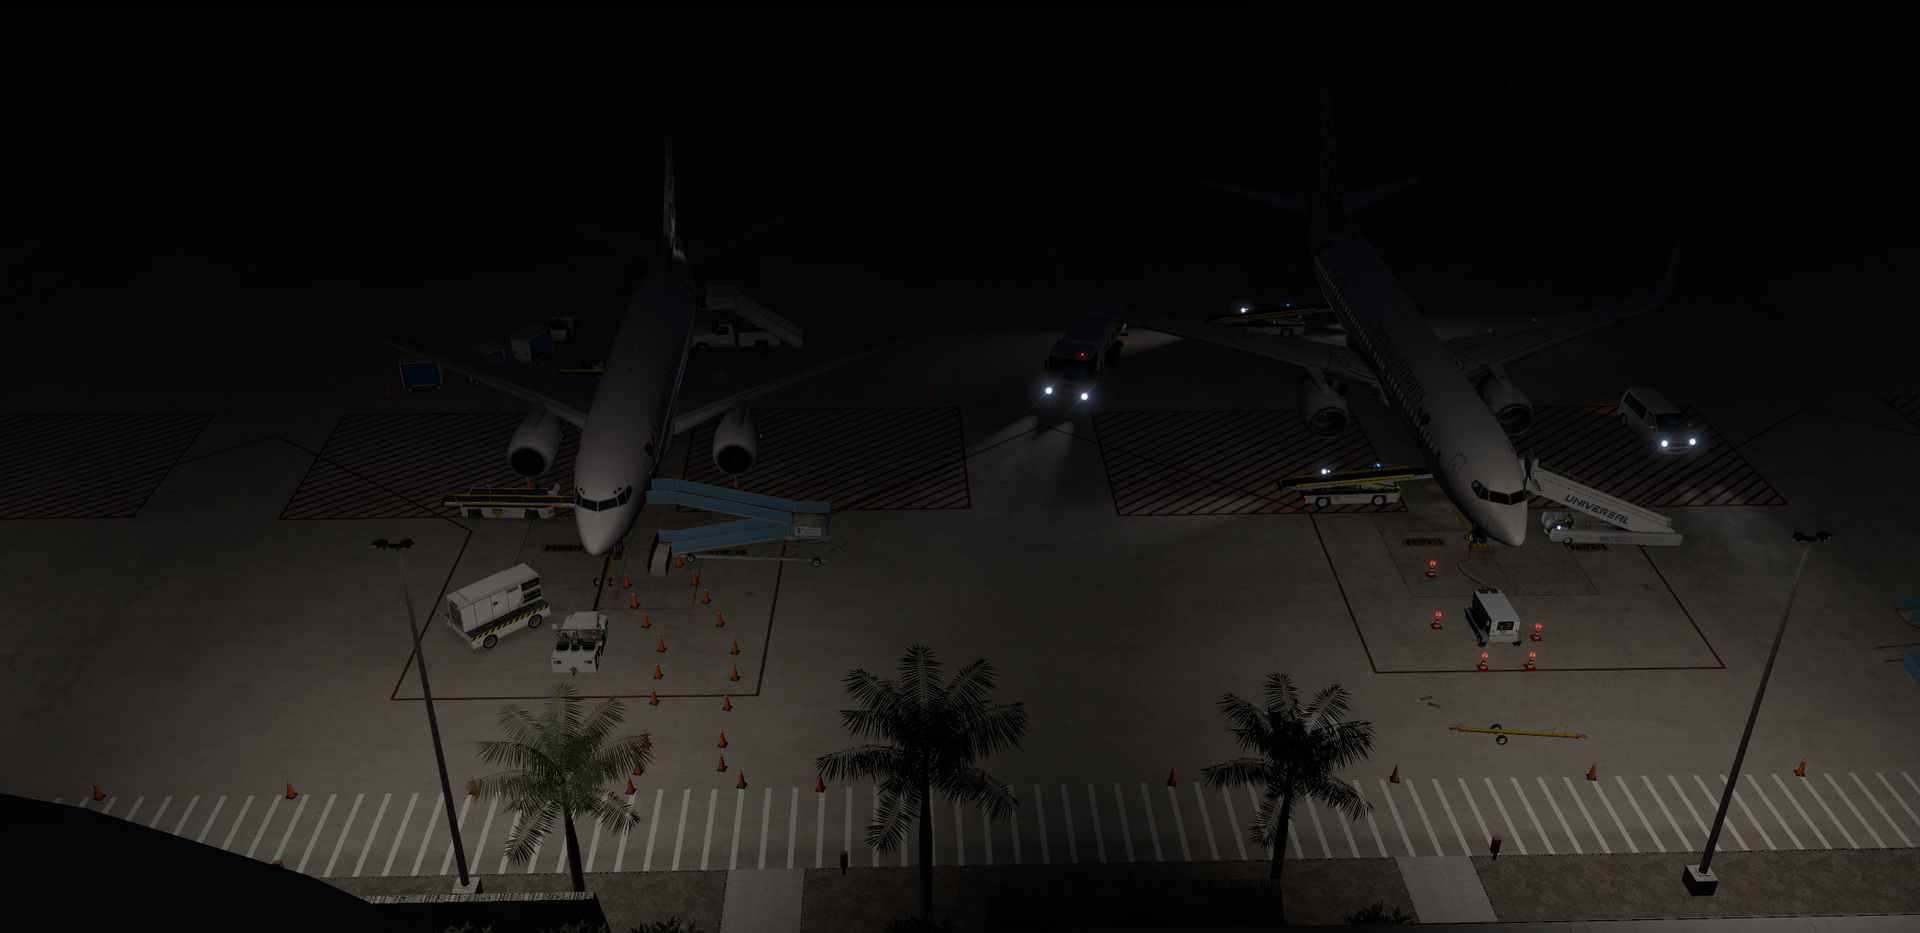 b738_71.png